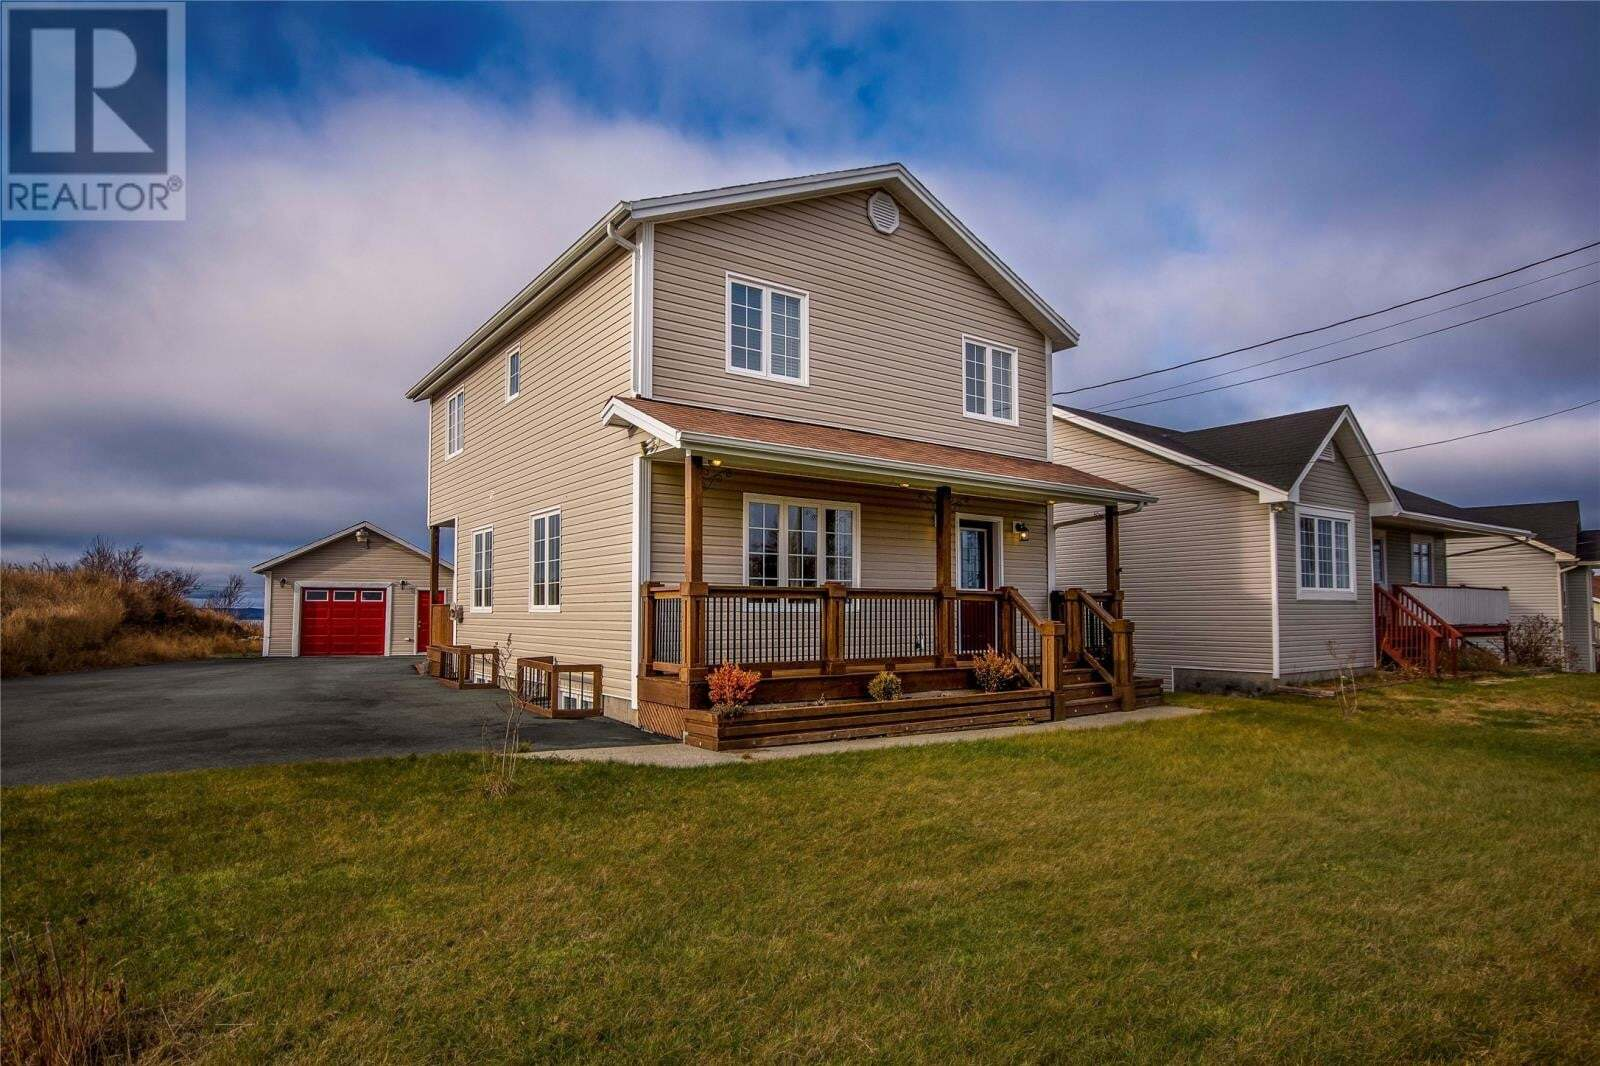 House for sale at 36 Farmland Ln Conception Bay South Newfoundland - MLS: 1214233